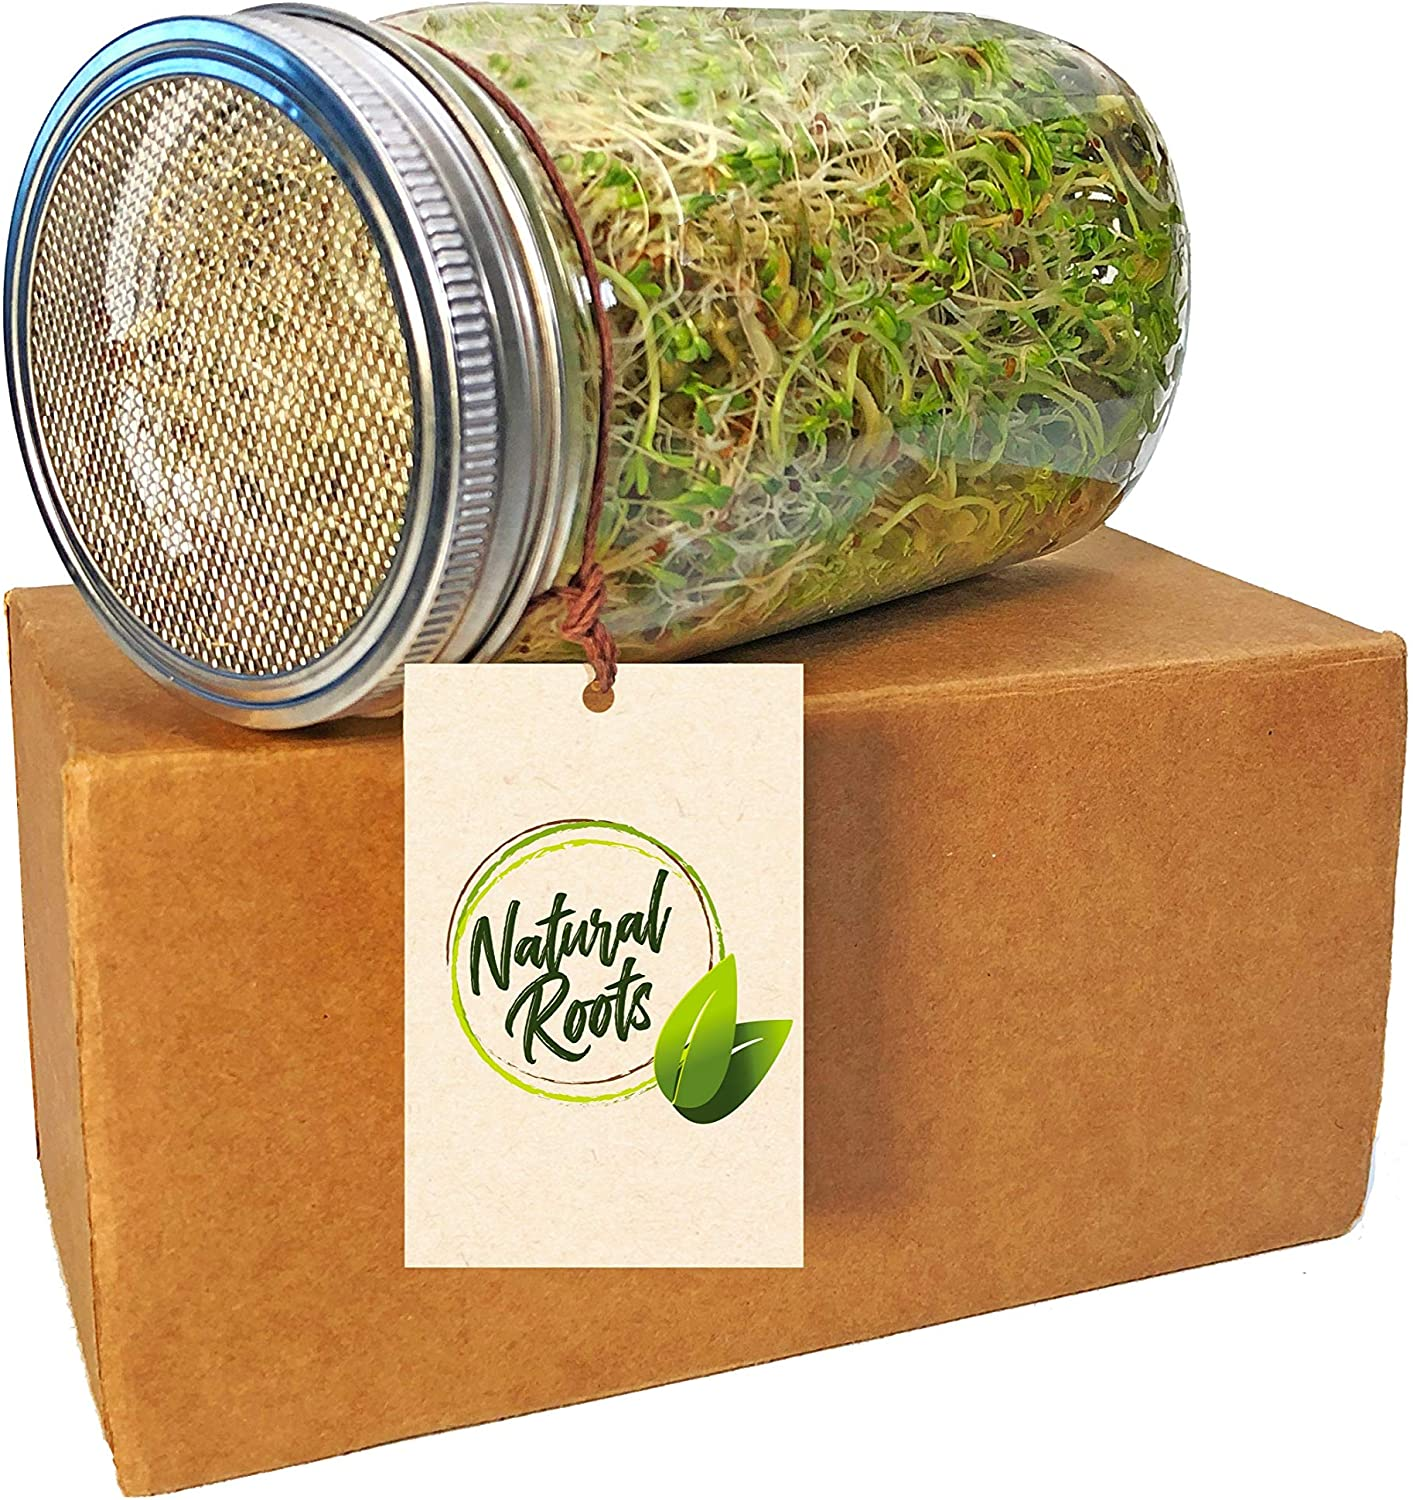 Natural roots sprouting jar